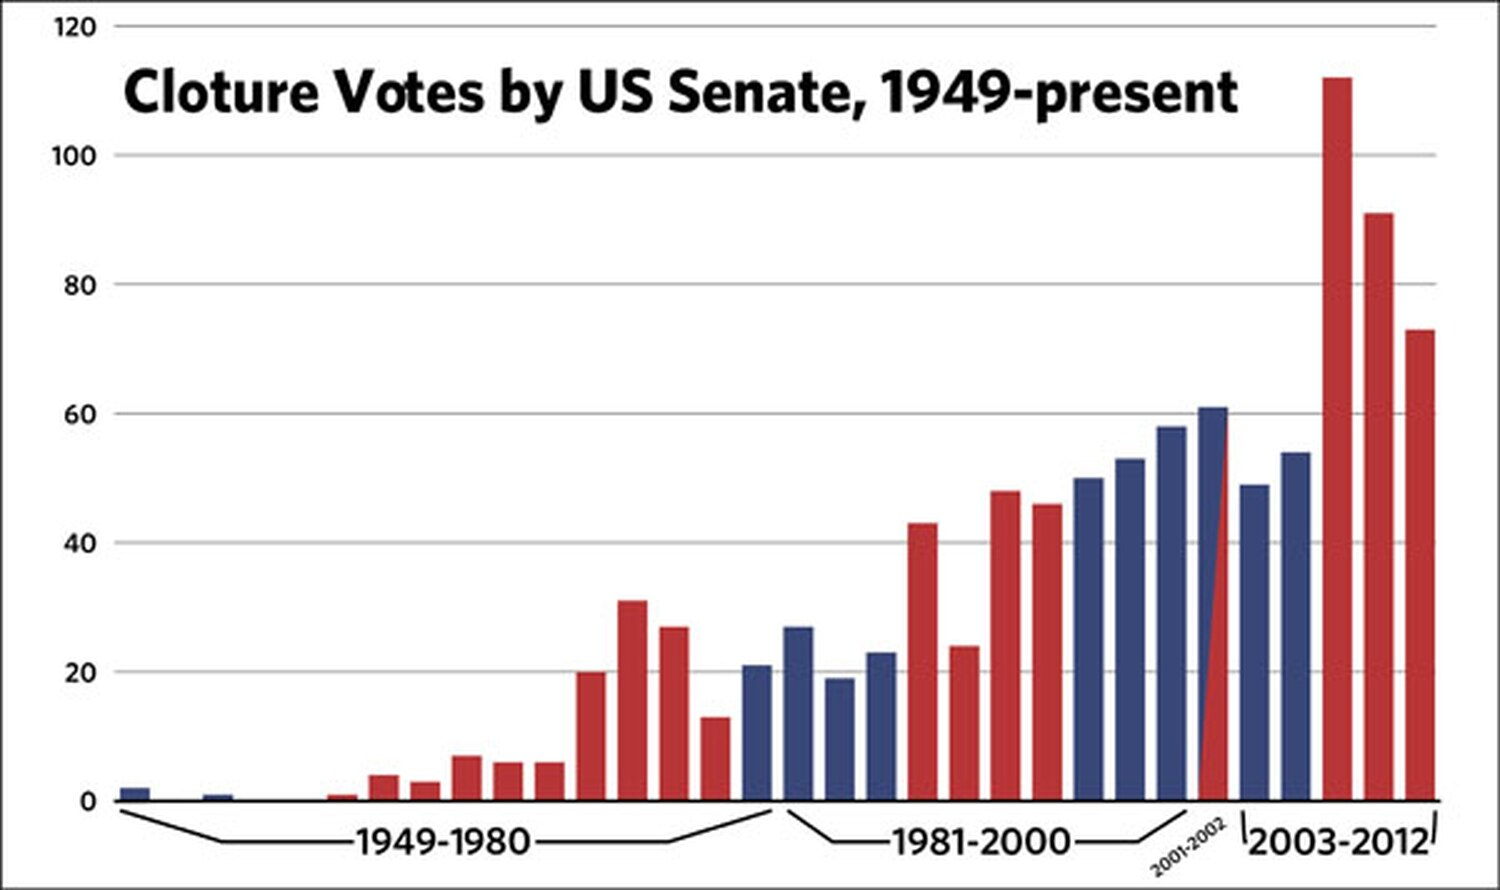 This chart shows the number of cloture votes, which are generally used to stop a filibuster, and therefore reflect an increase in filibusters. Columns are color-coded by minority party (red for Republicans, blue for Democrats). Source: senate.gov